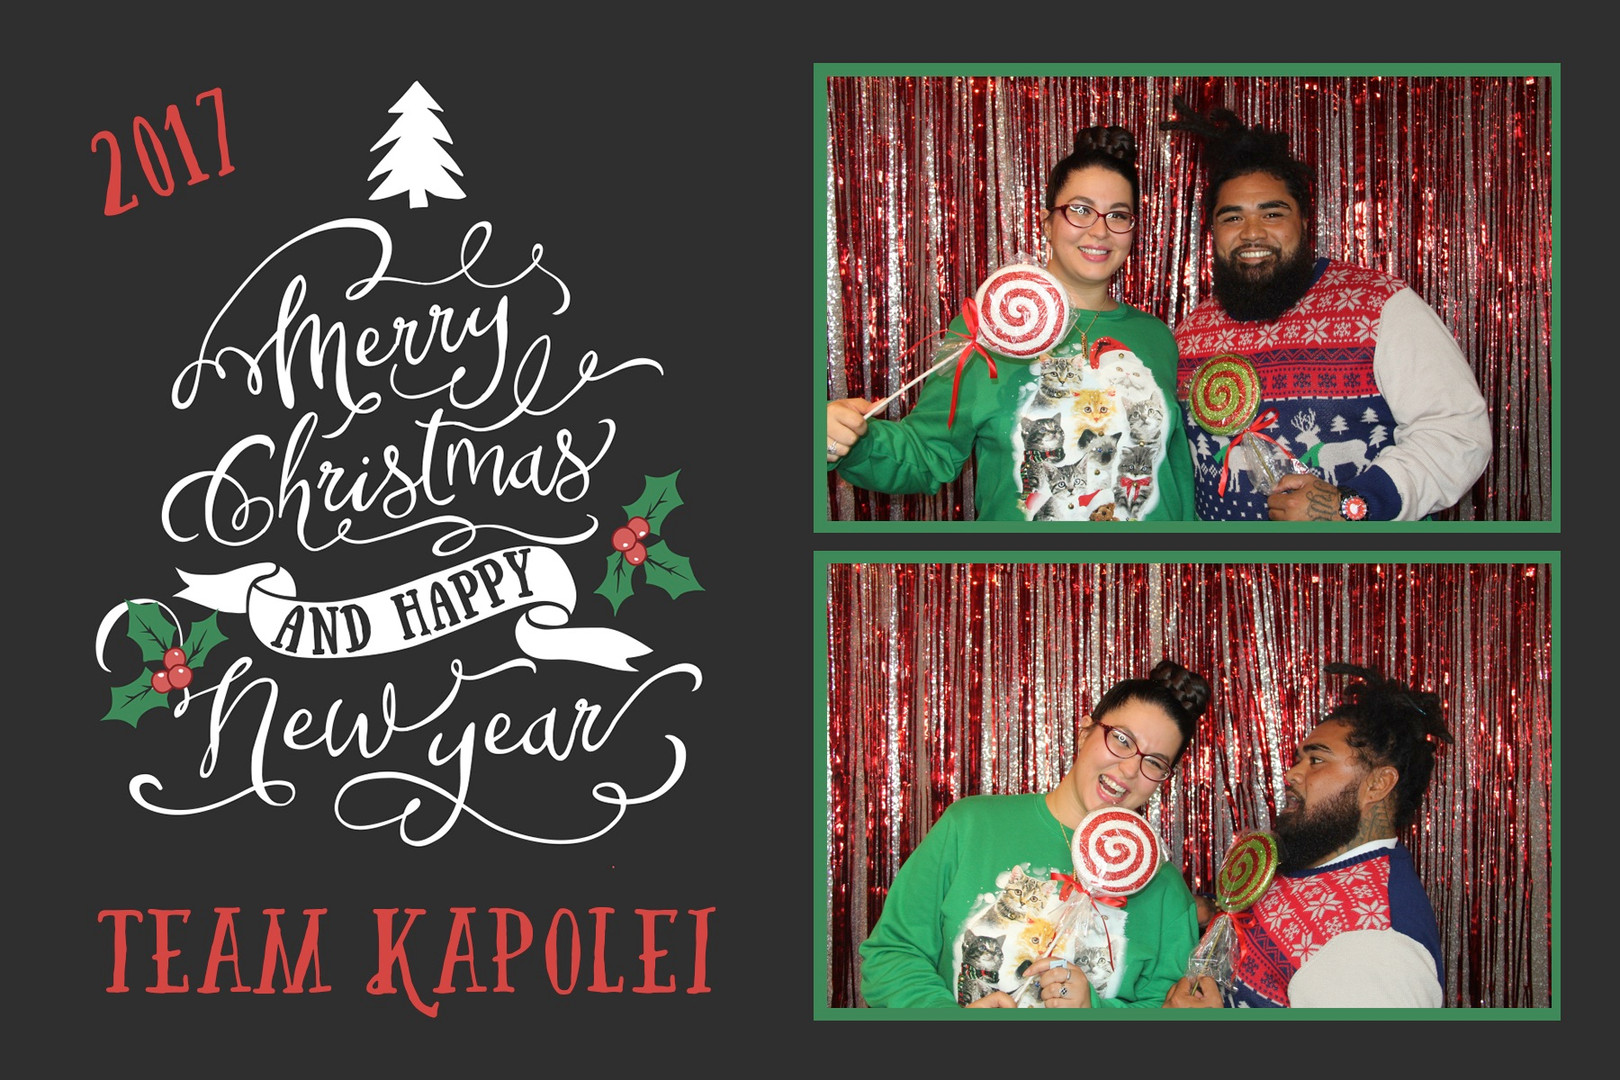 Team Kapolei Christmas.jpg